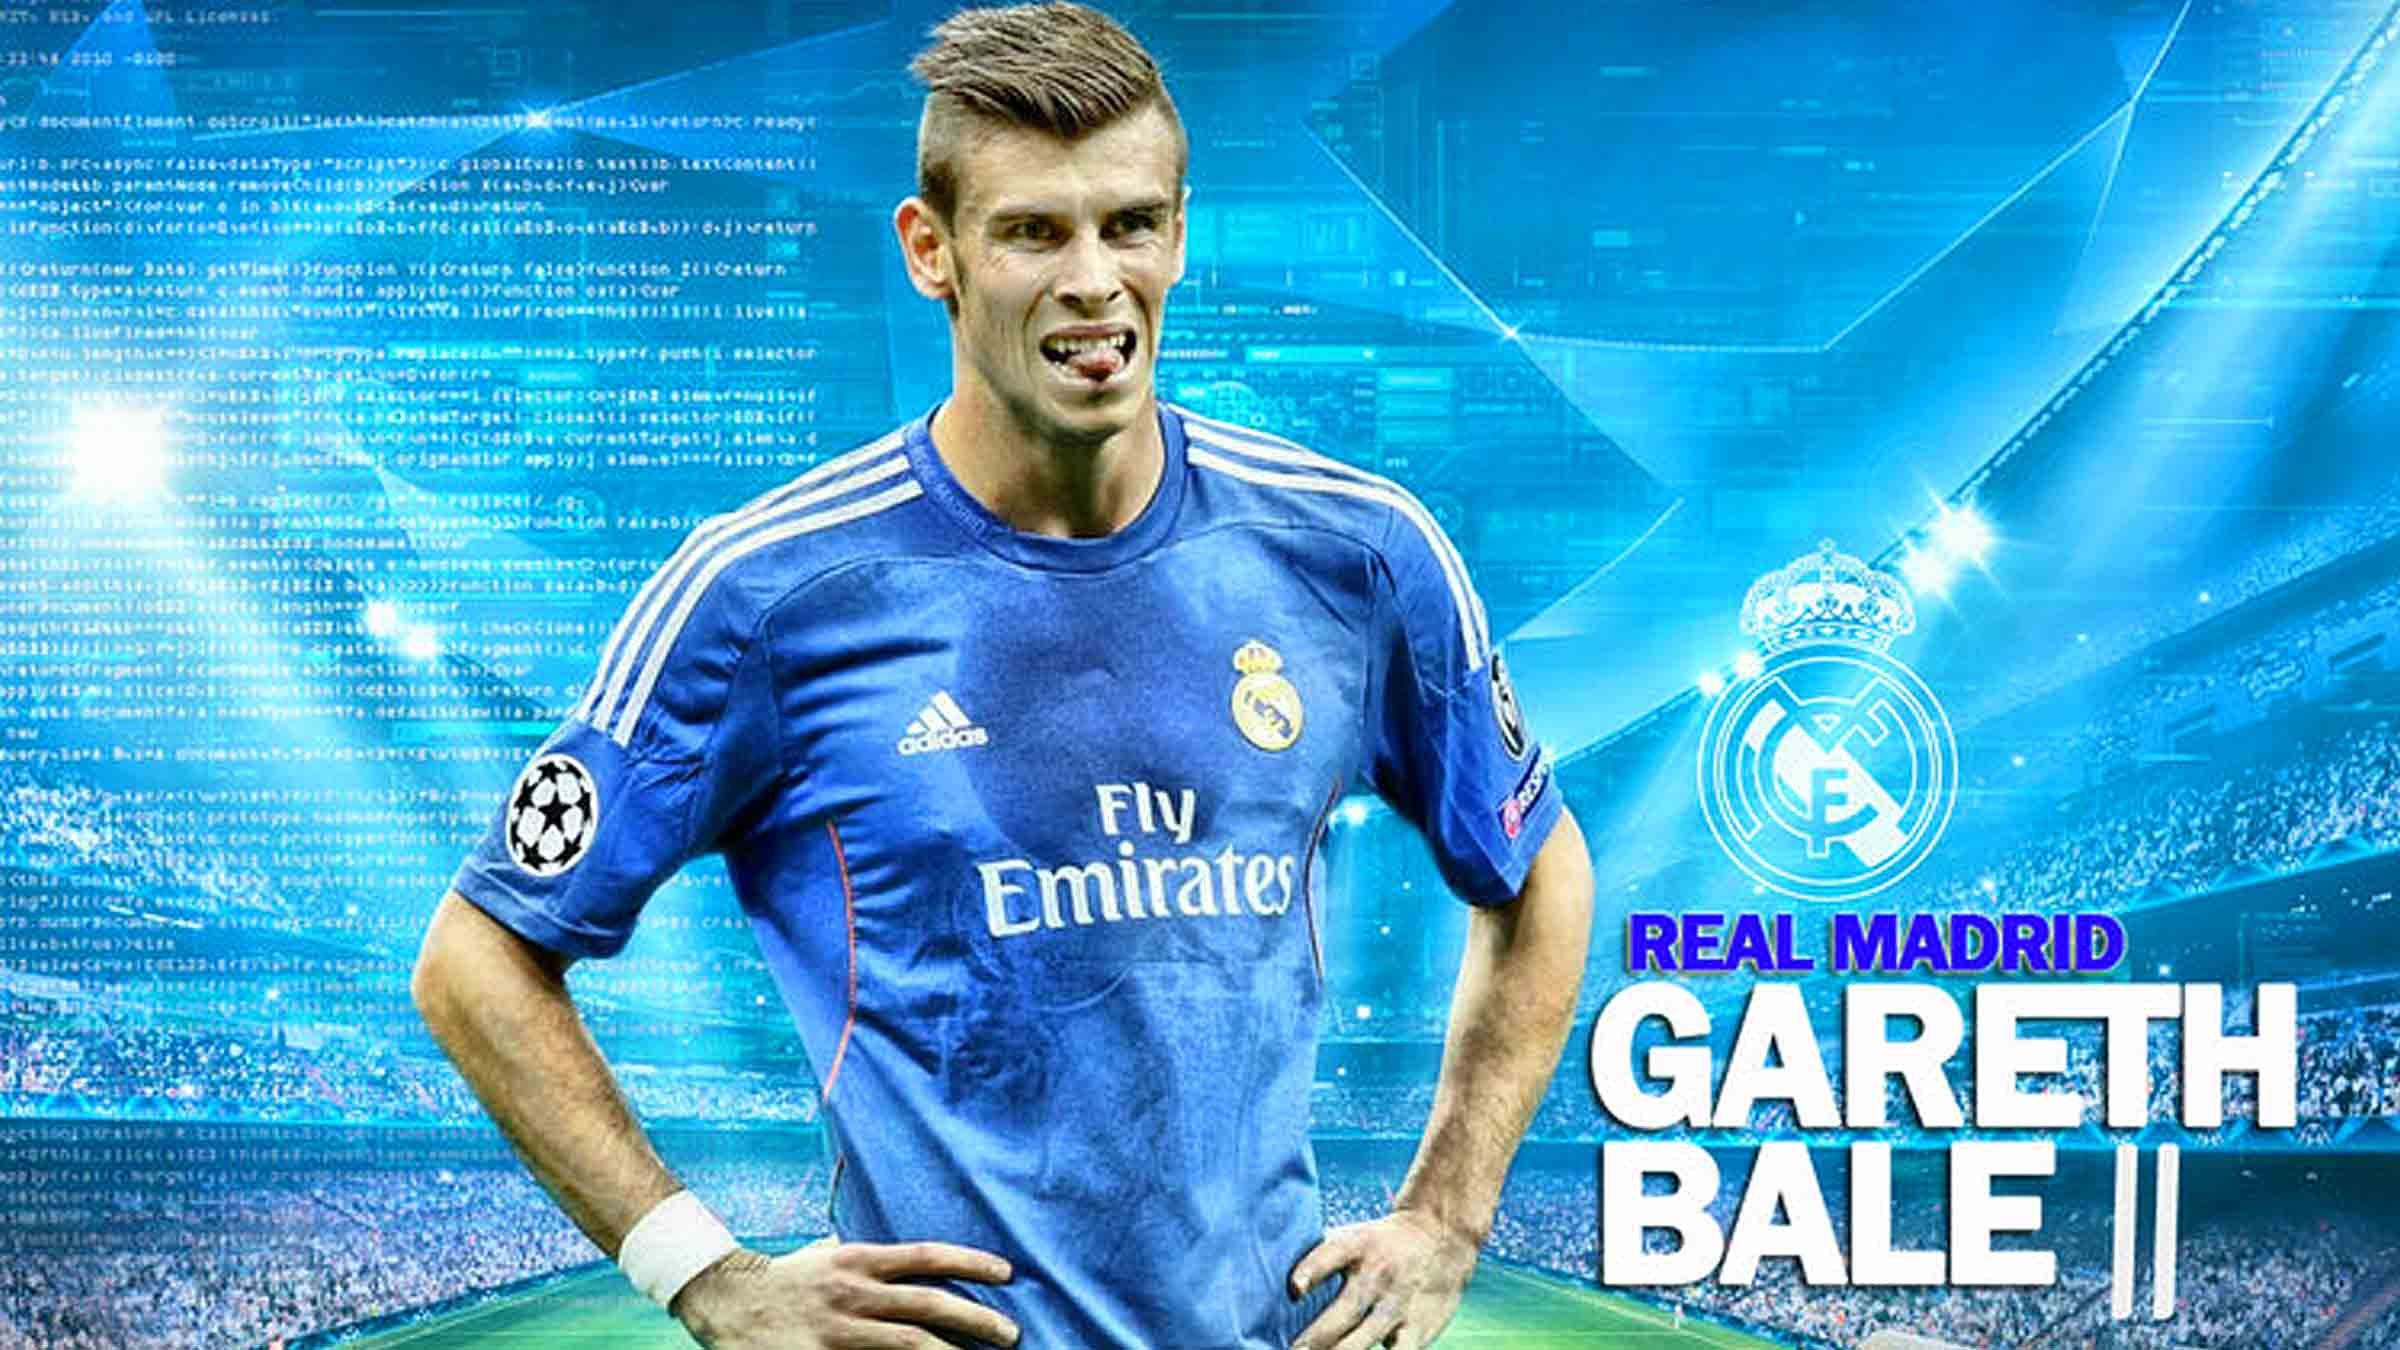 Gareth bale hd images 10 football wallpapers pinterest gareth bale hd images 10 voltagebd Gallery